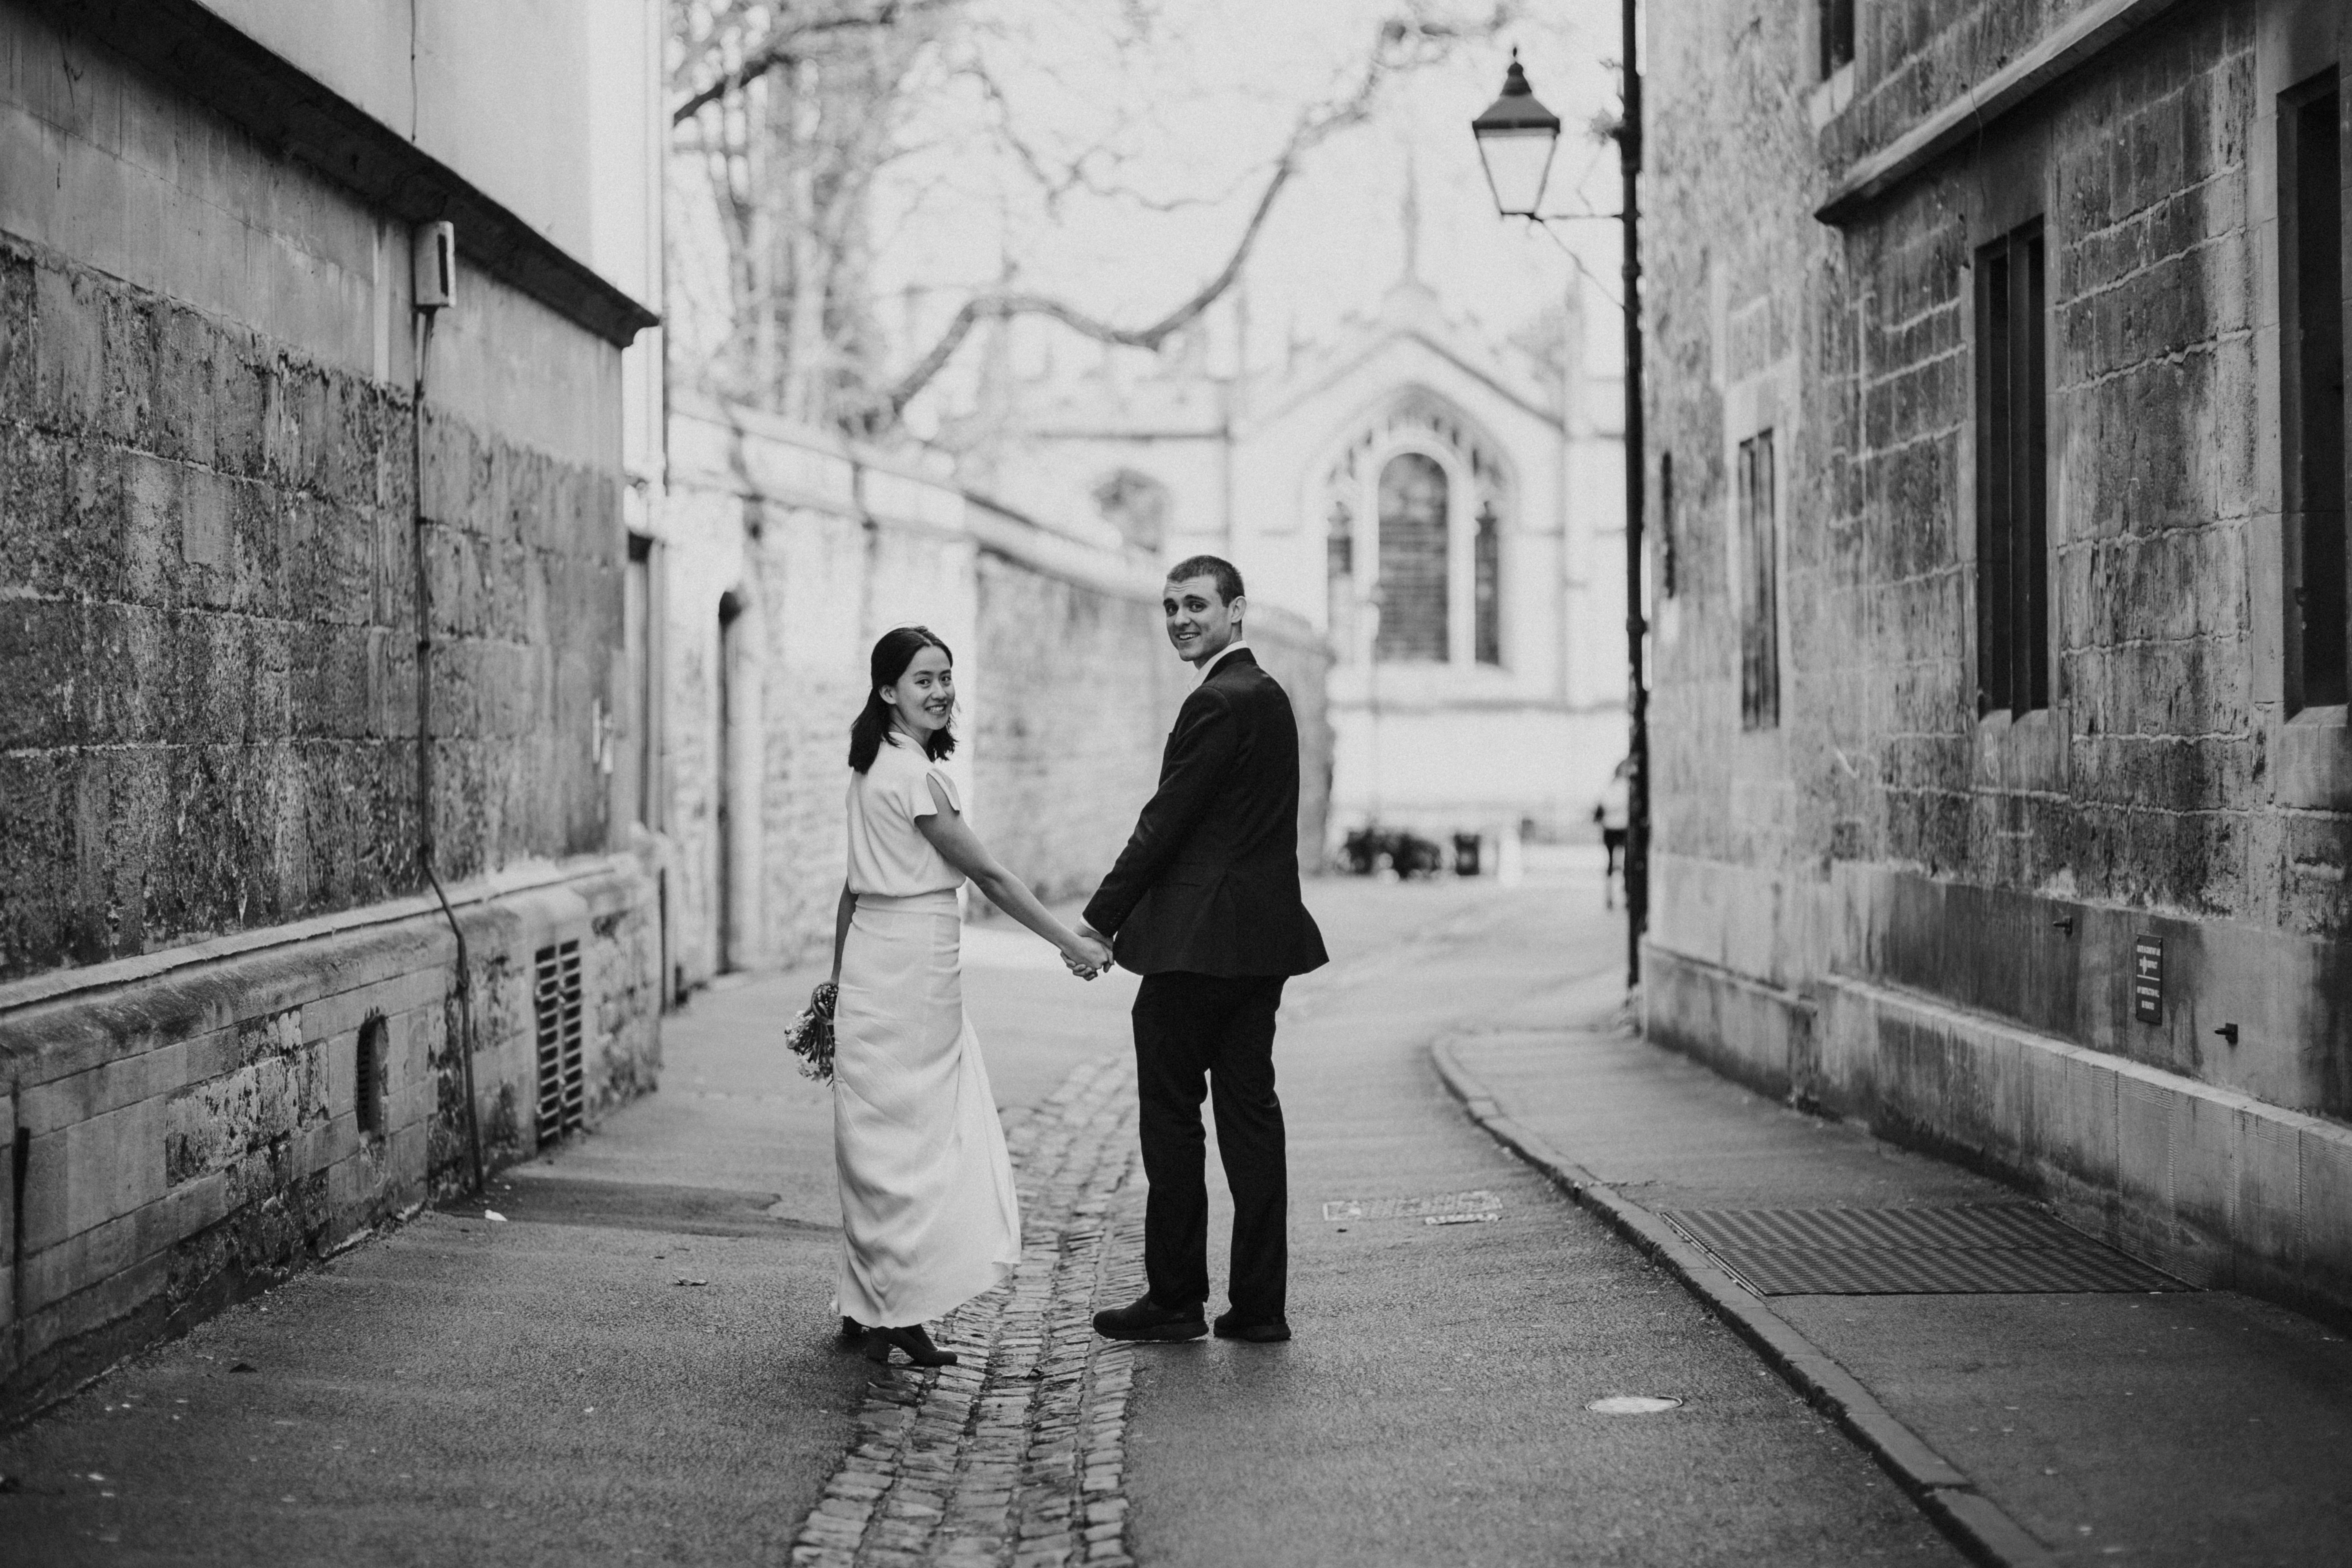 blak and white lifestyle portrait of the newlyweds